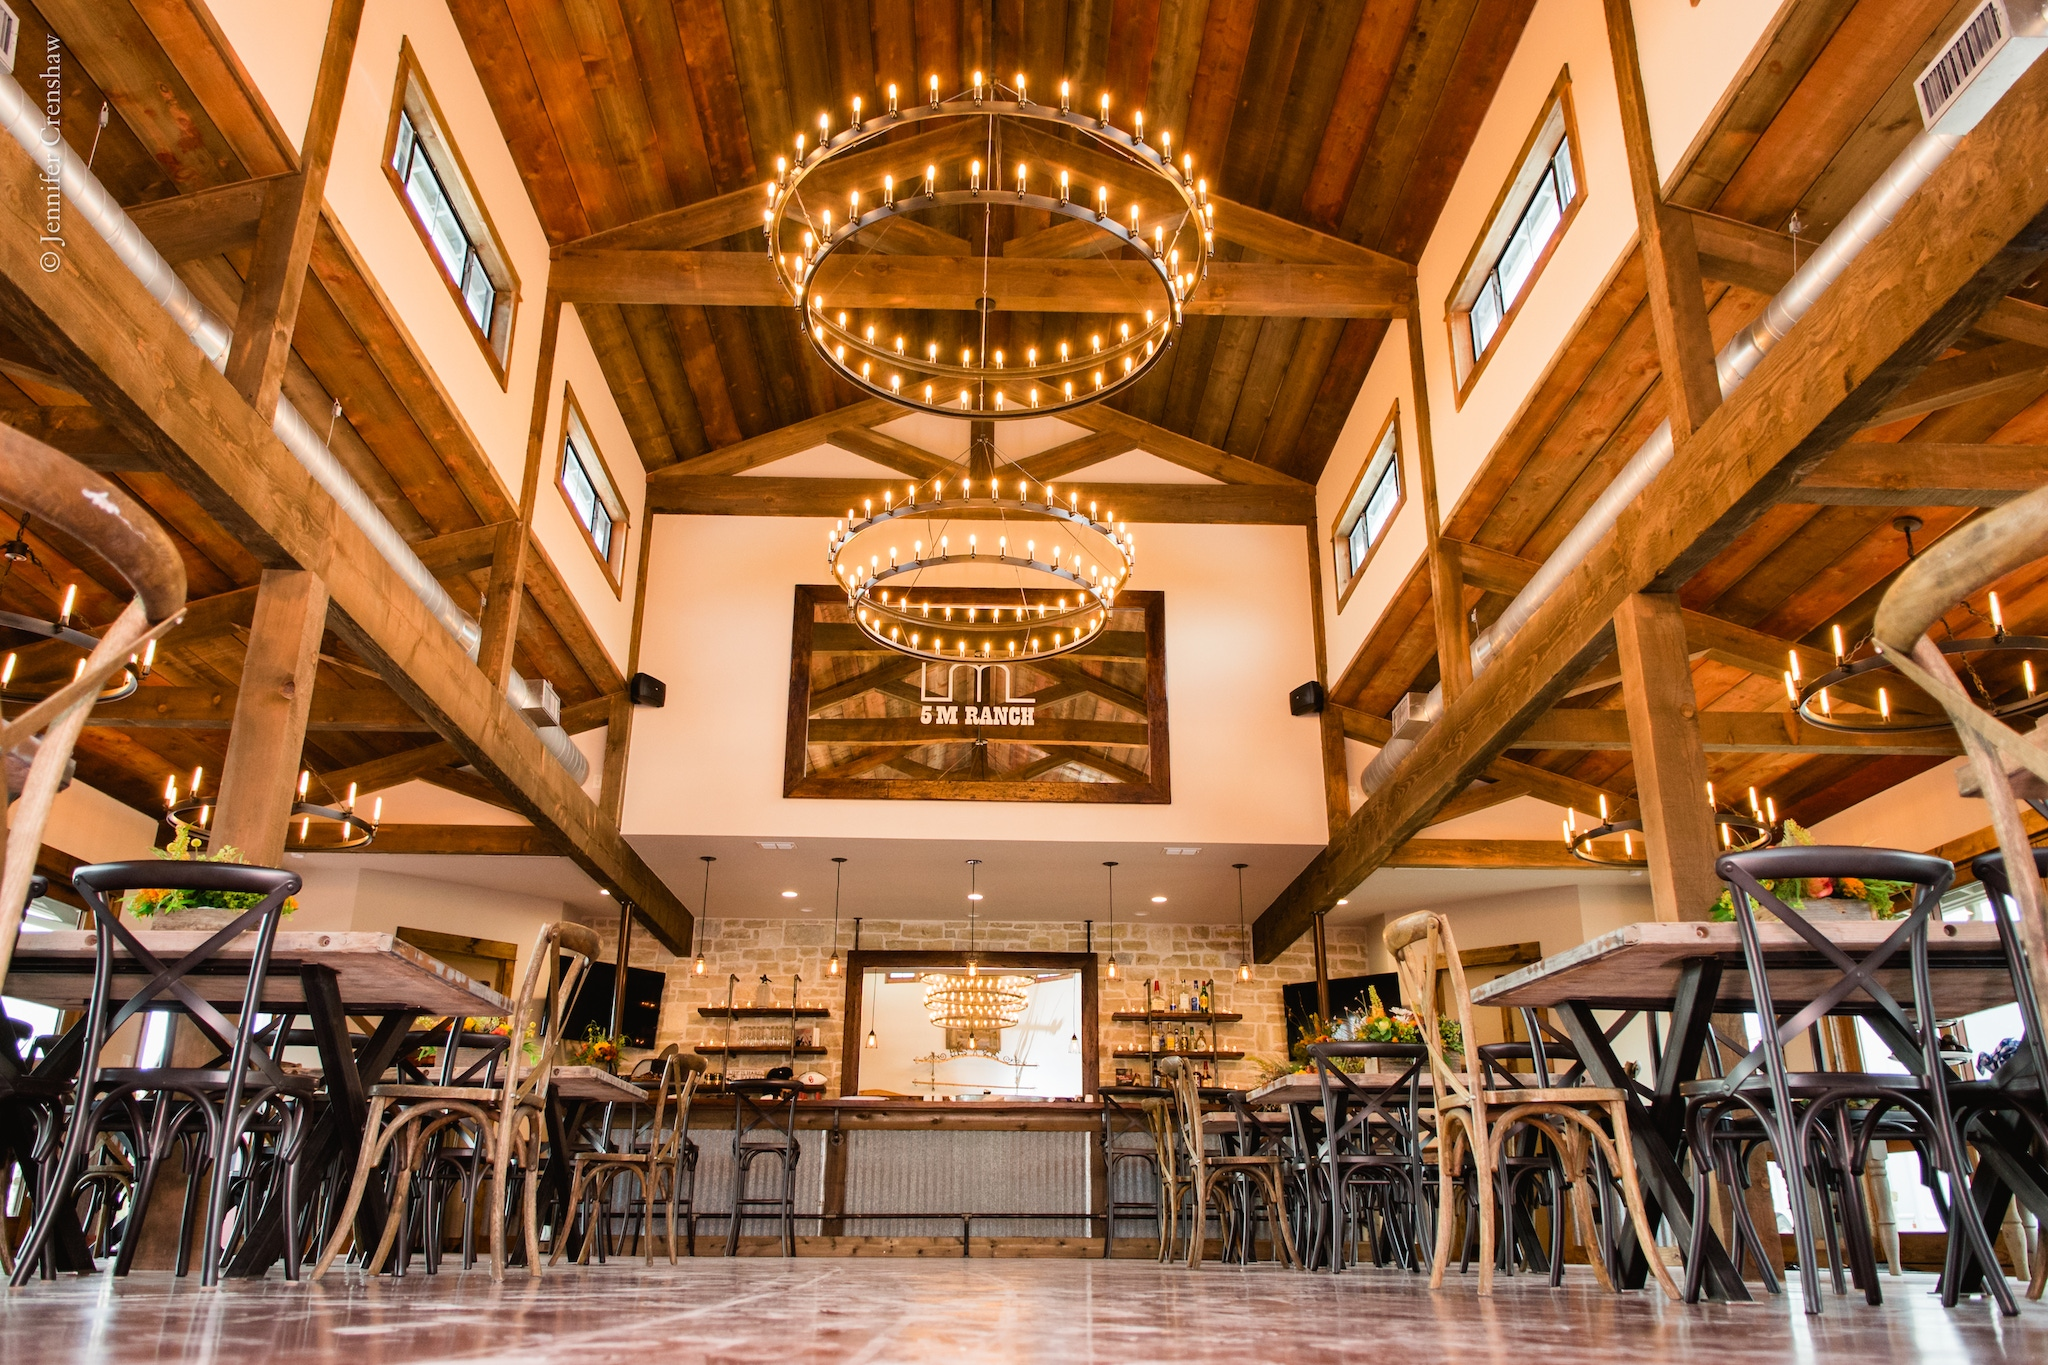 Texas ranch with rustic theme and hanging chandeliers